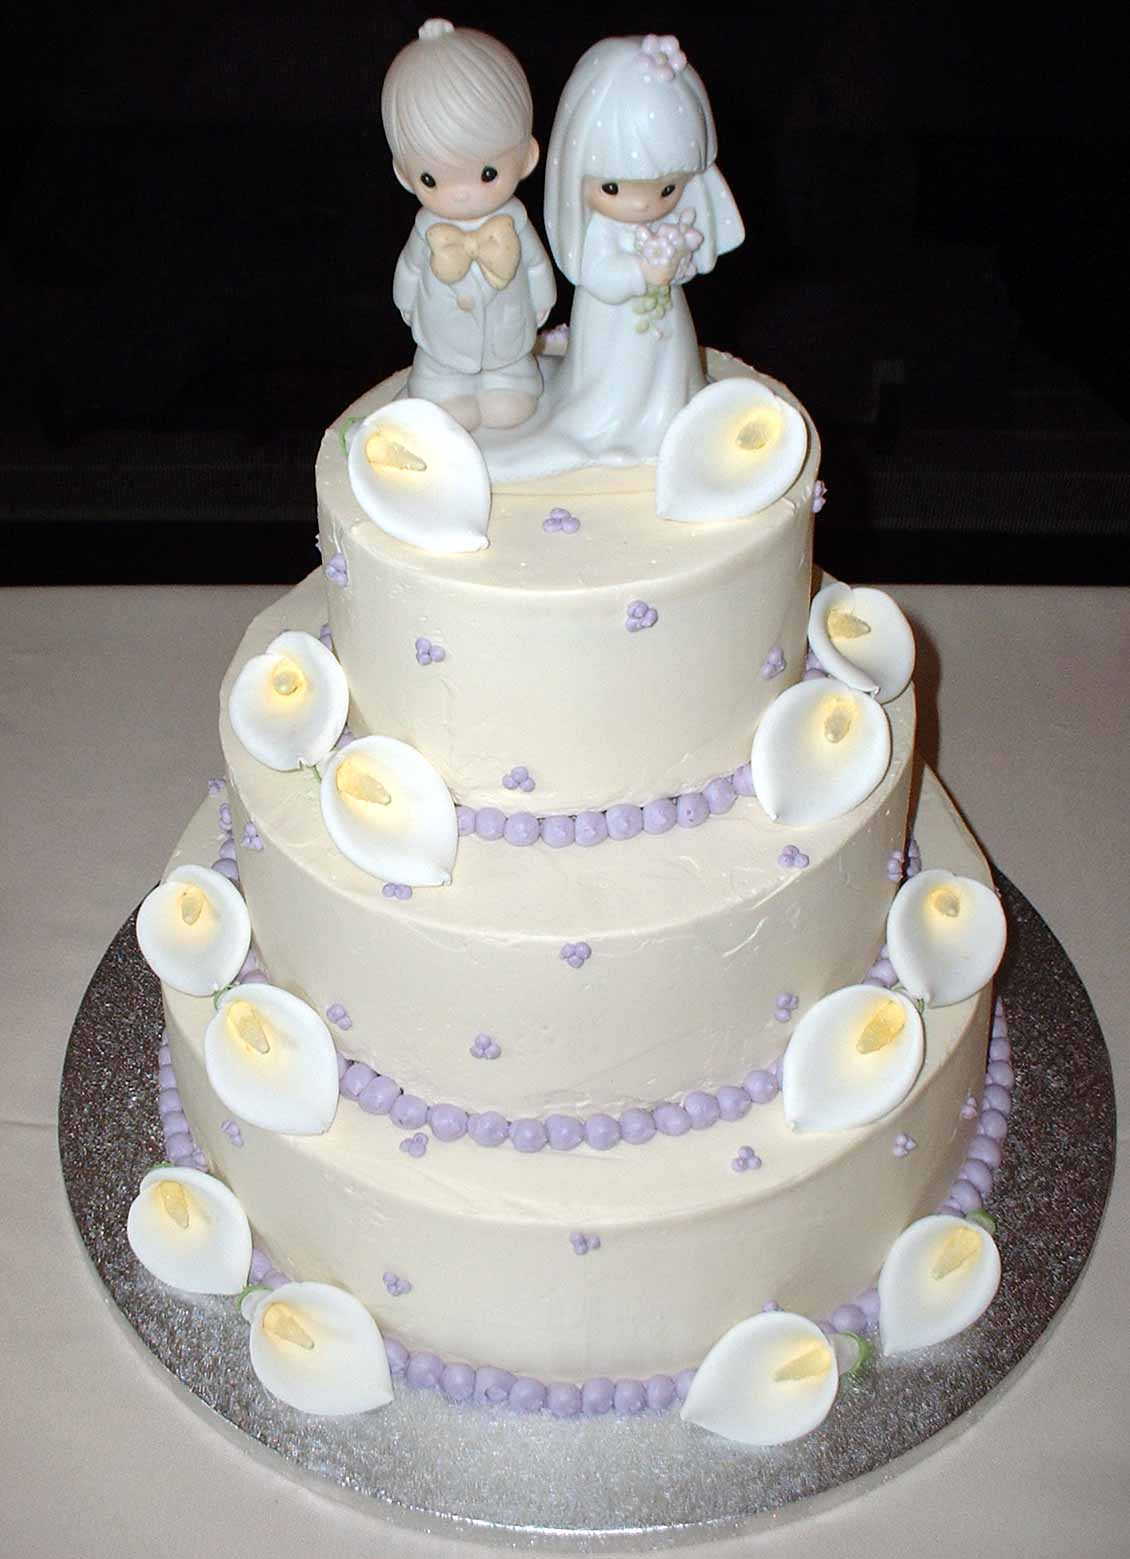 Cake Designs And Images : Wedding Cake Designs 2011